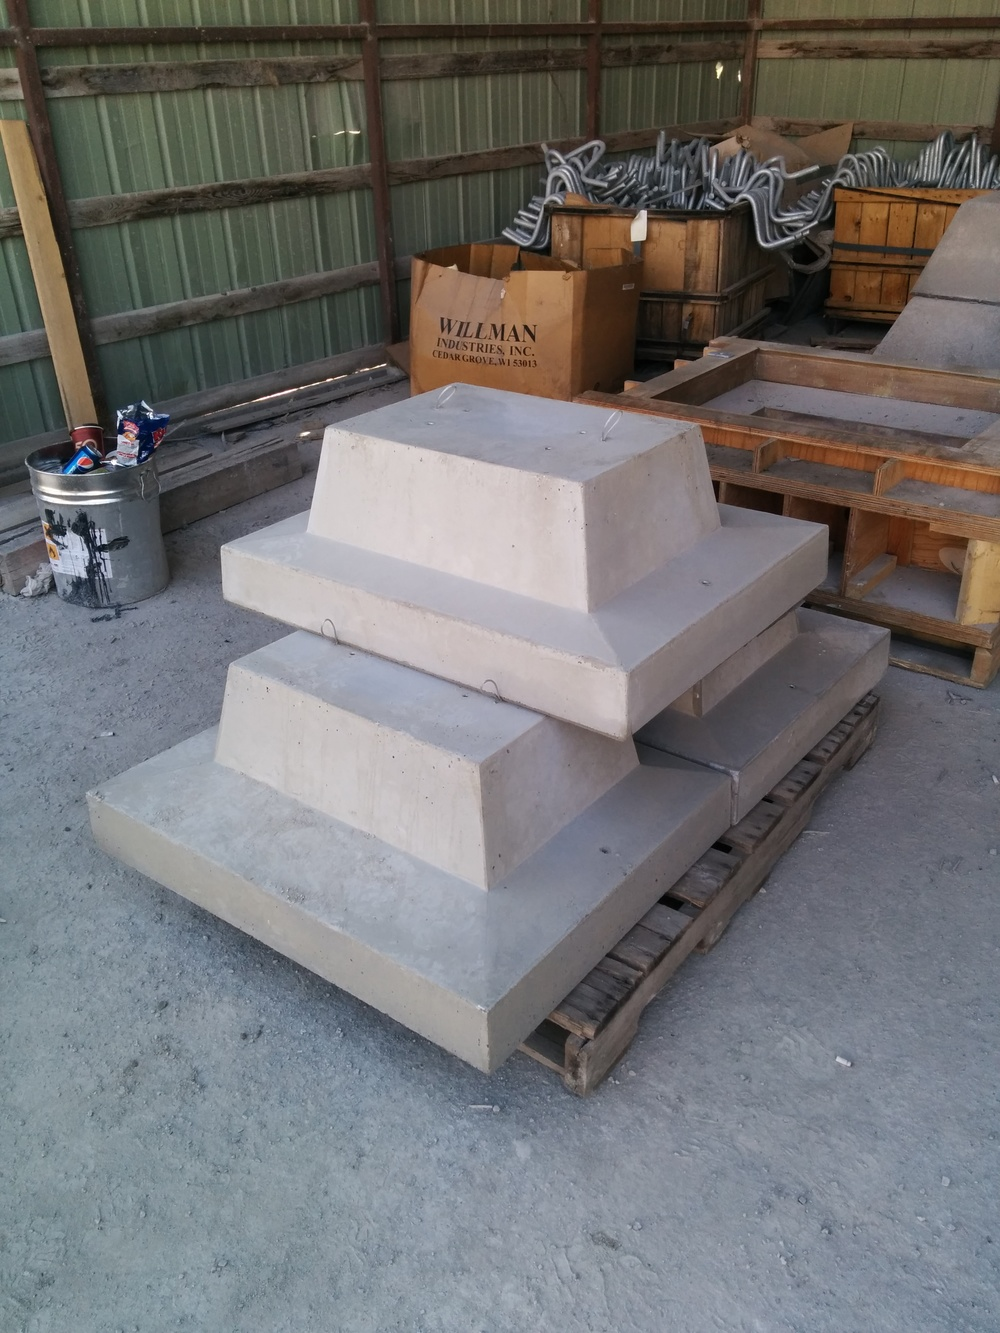 I sourced a precast concrete producer to create prototypes for testing.